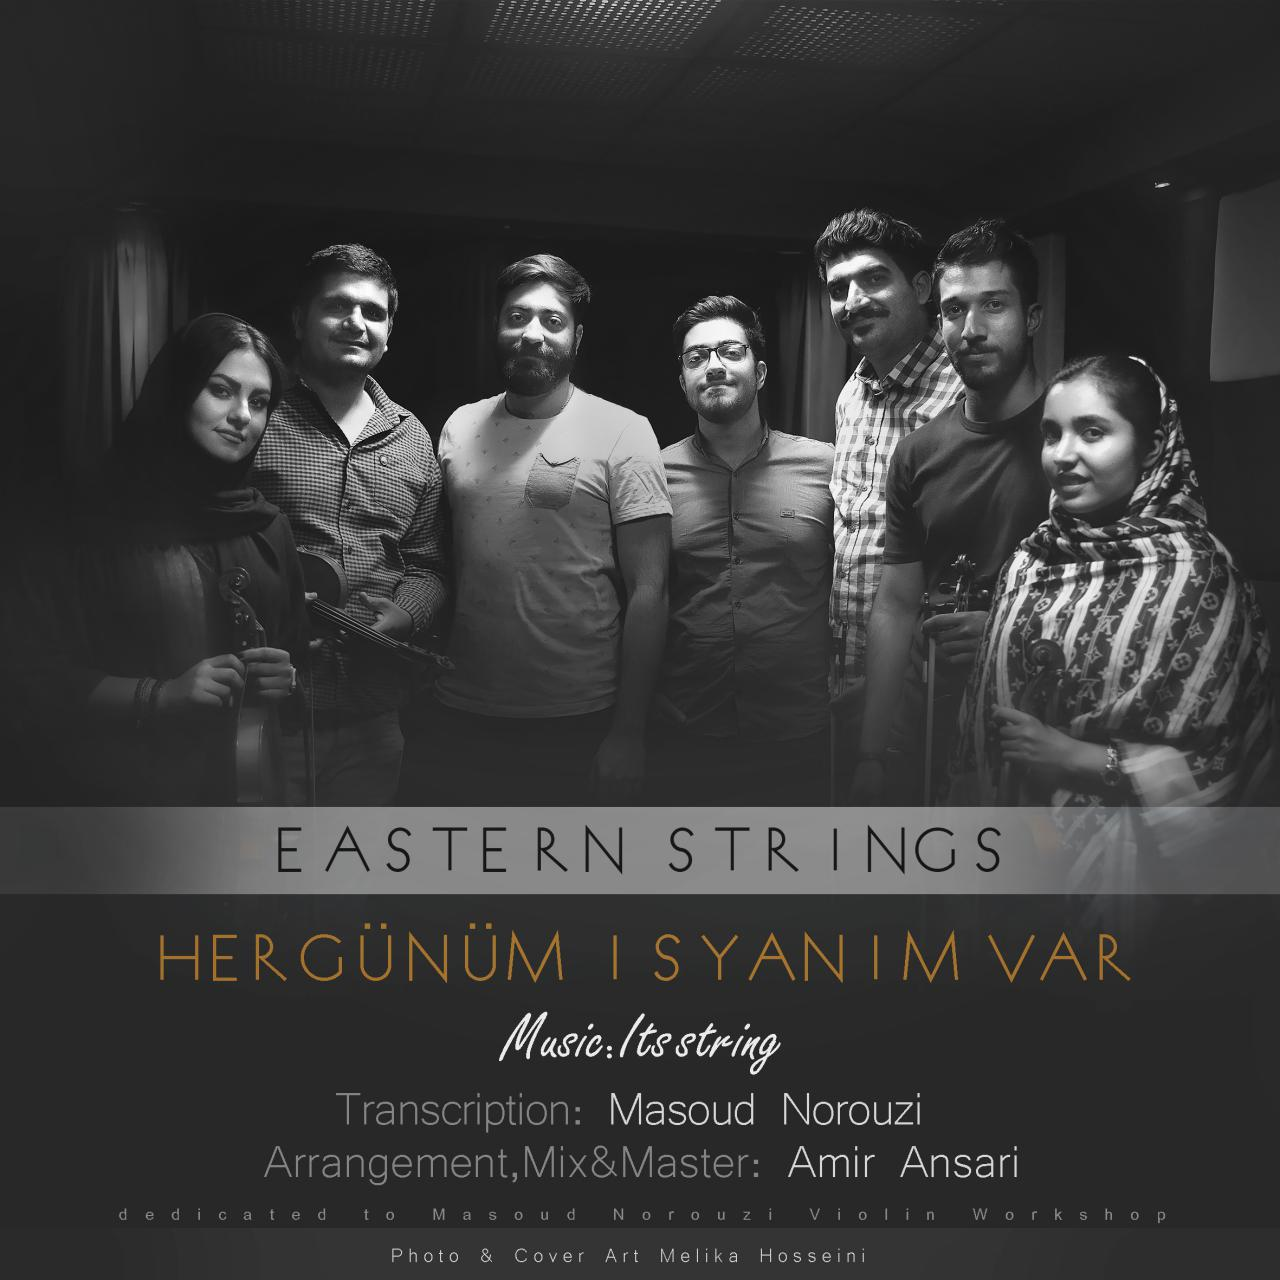 http://birtunes.ir/wp-content/uploads/2018/11/Eastren-Strings-Hergunum-Isyanim-Var.jpg